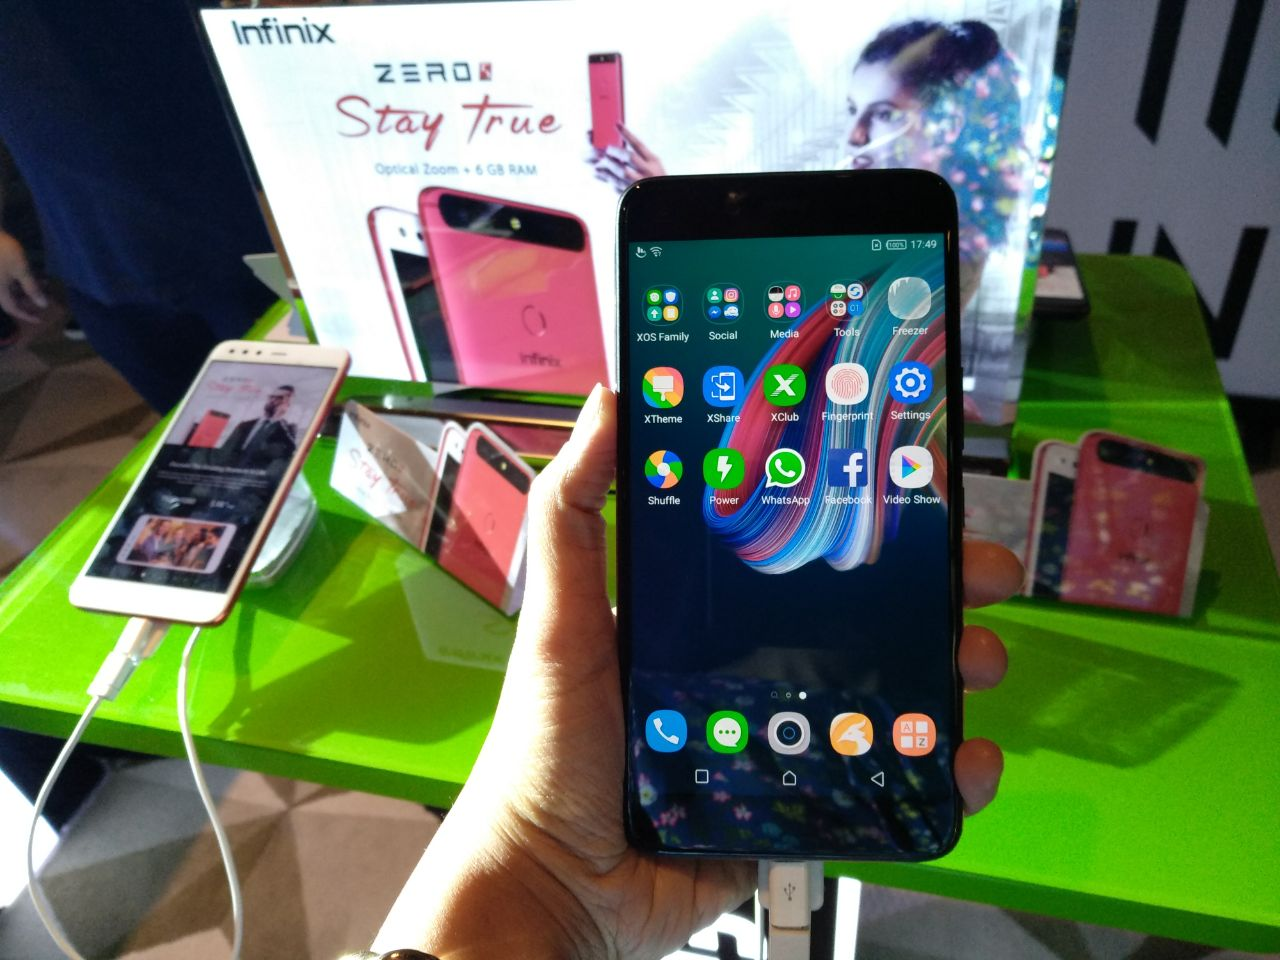 Infinix Zero 5 with dual rear cameras and 5.98-inch full HD display launched, price starts Rs 17,999